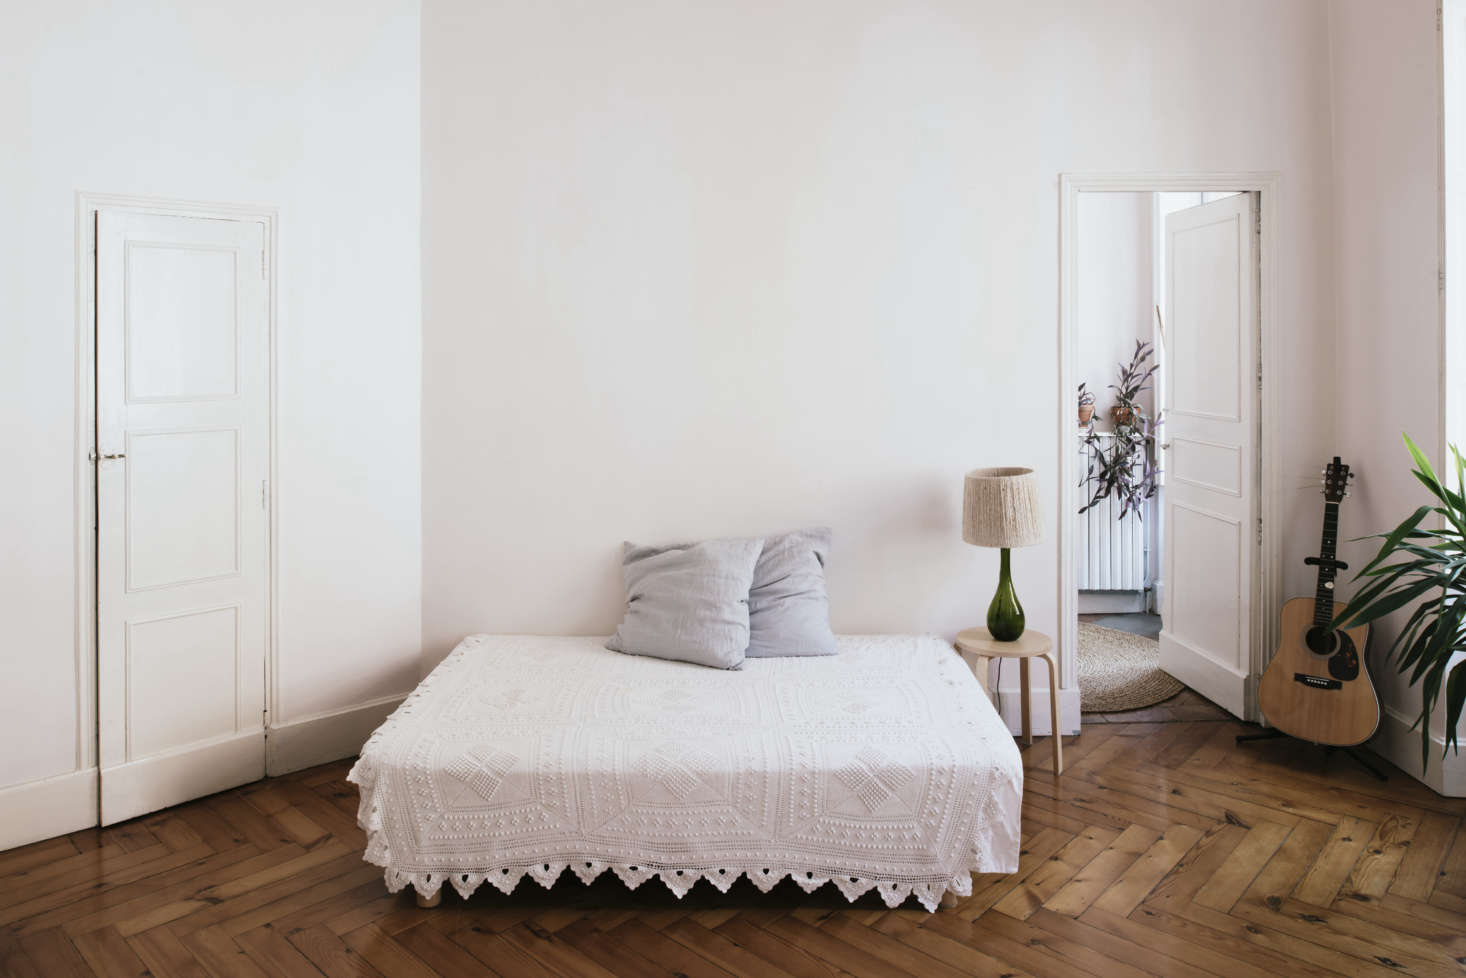 The sparsely fitted bedroom. &#8